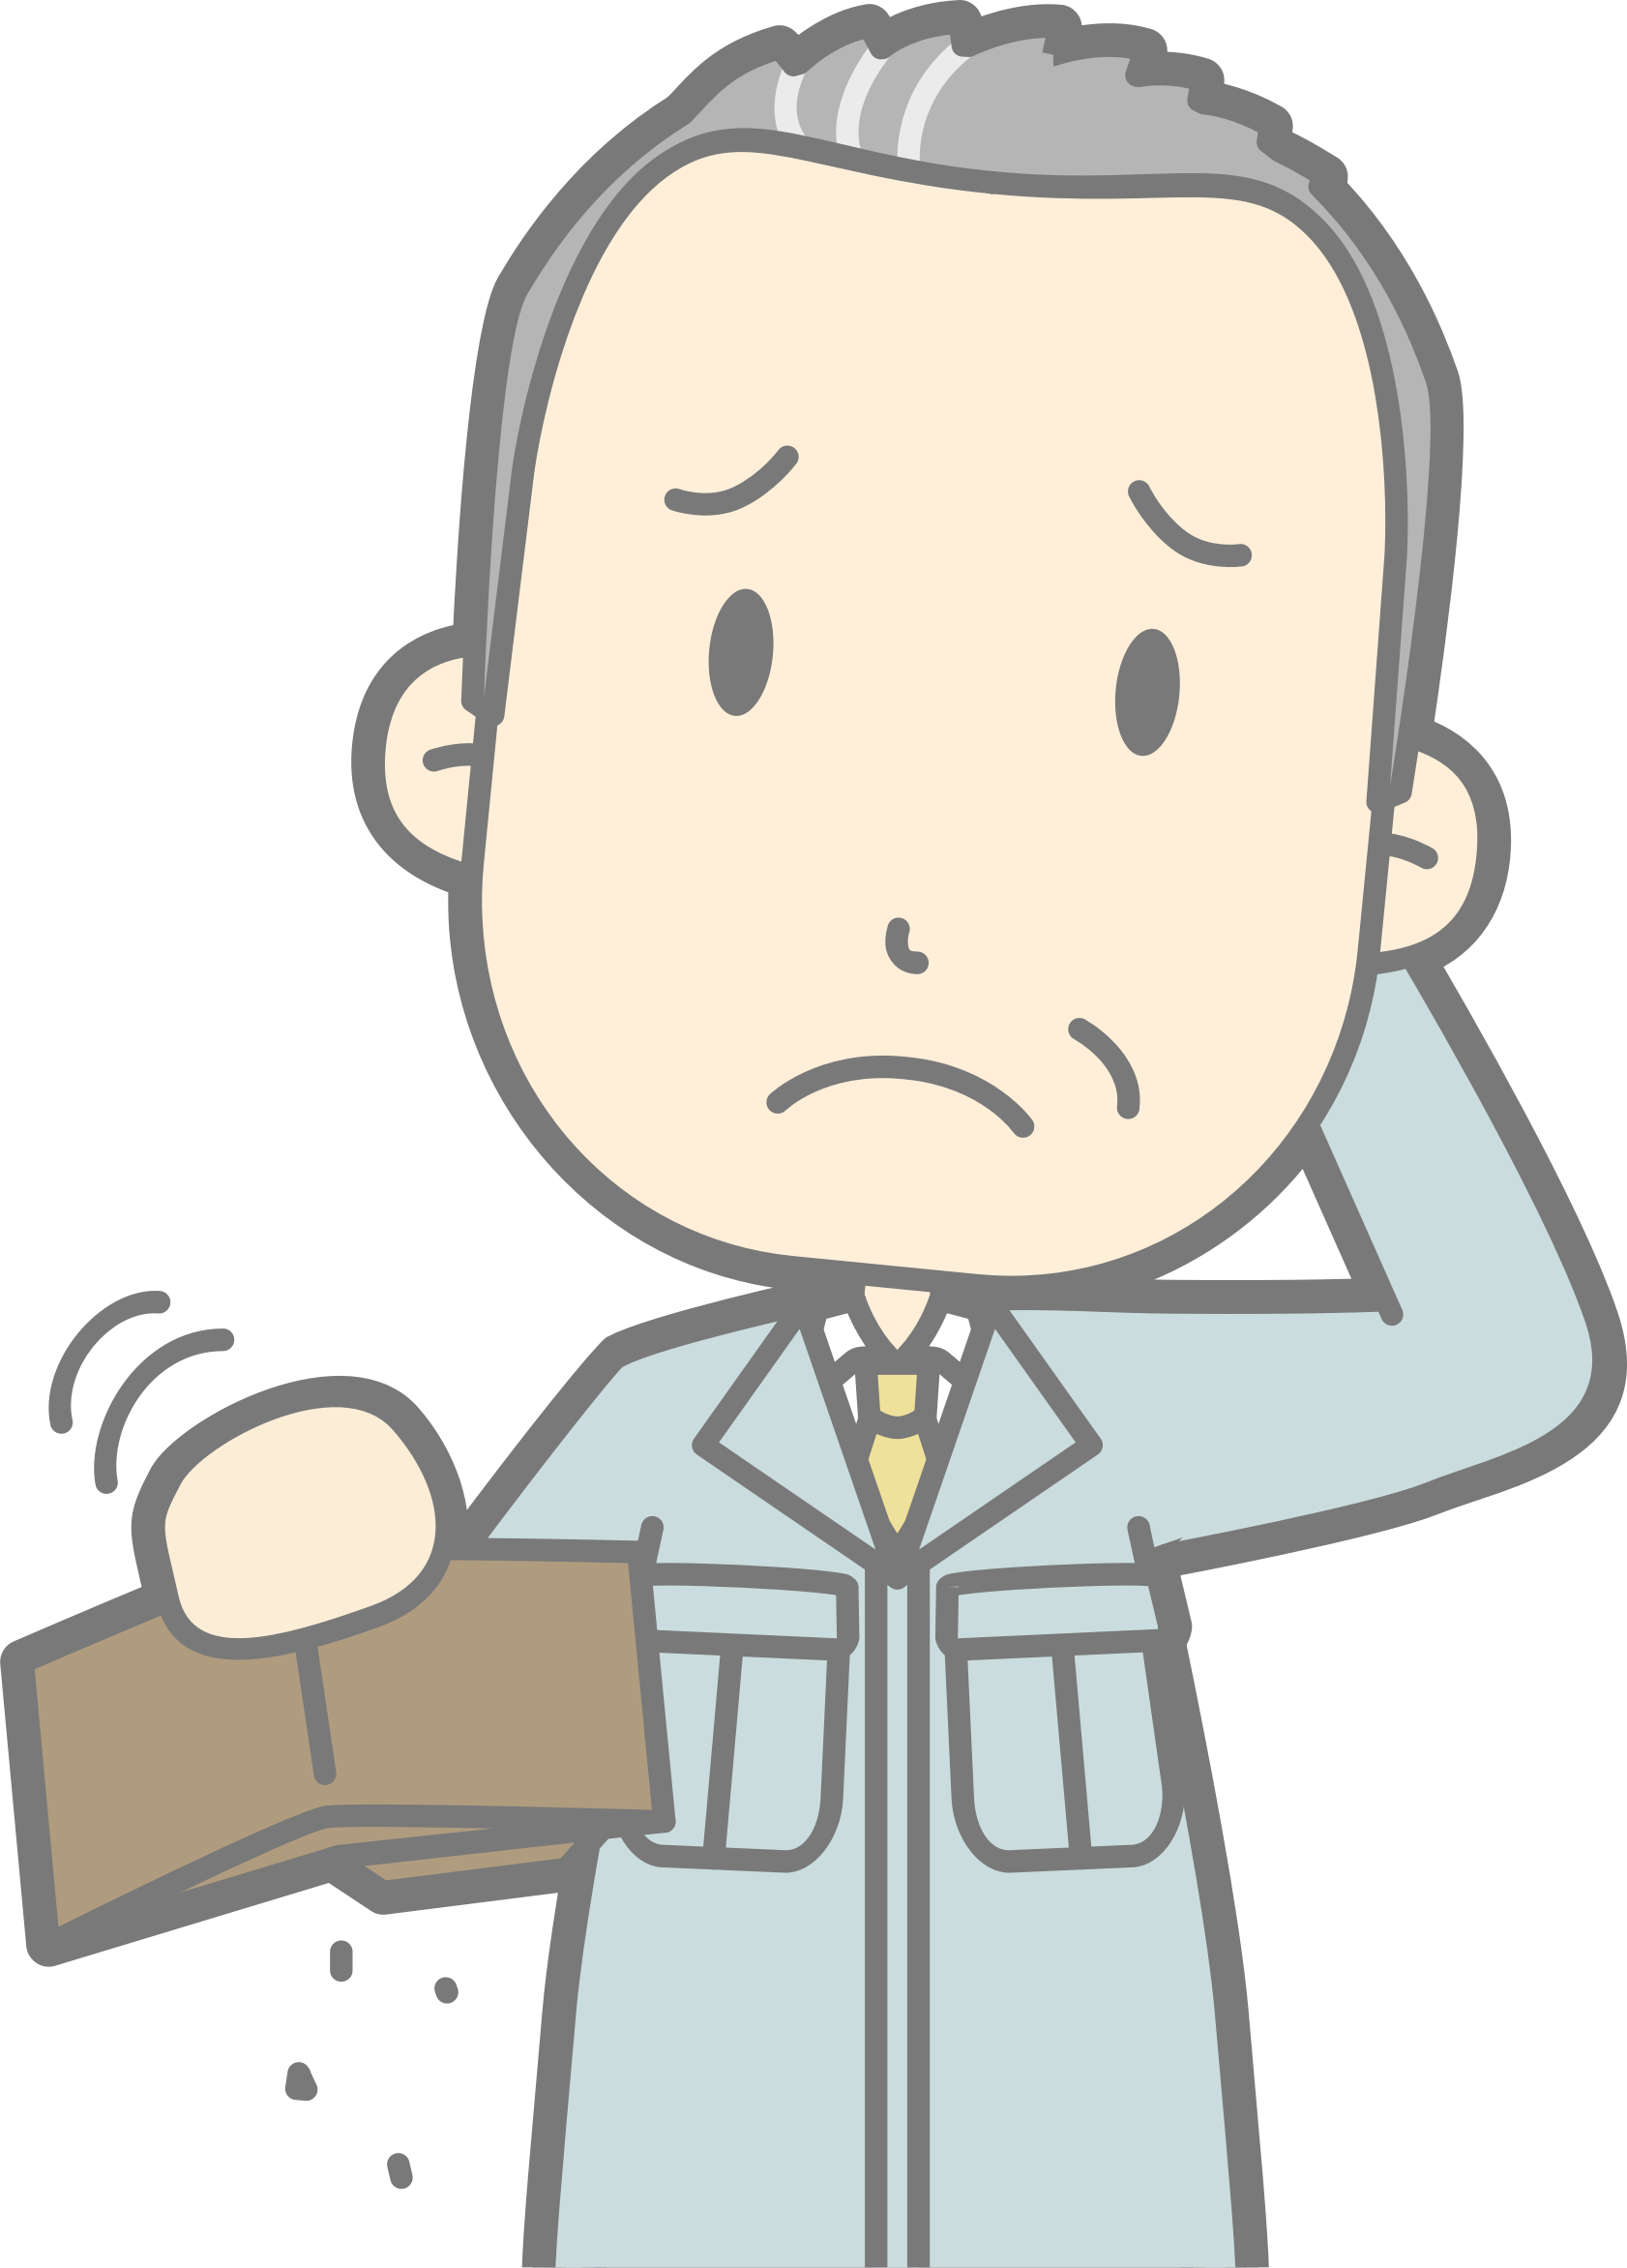 Poverty clipart poor. Male big image png